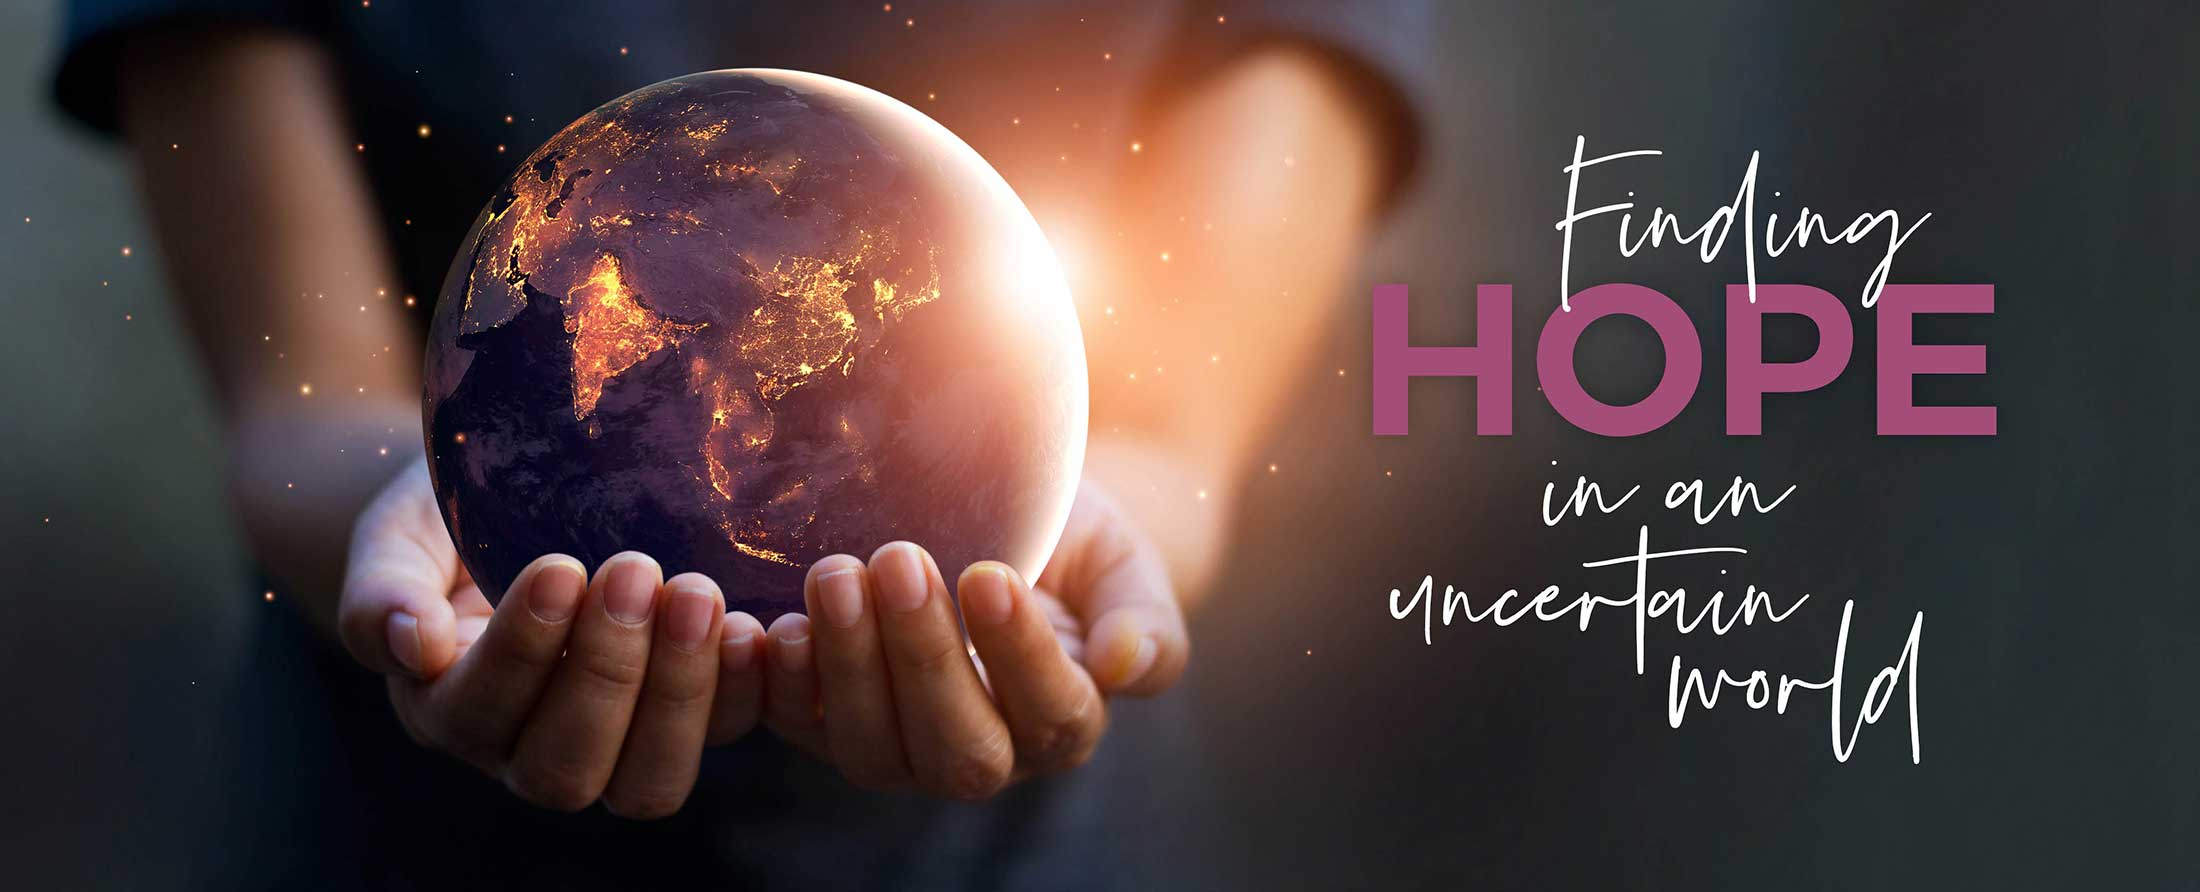 finding hope in an uncertain world